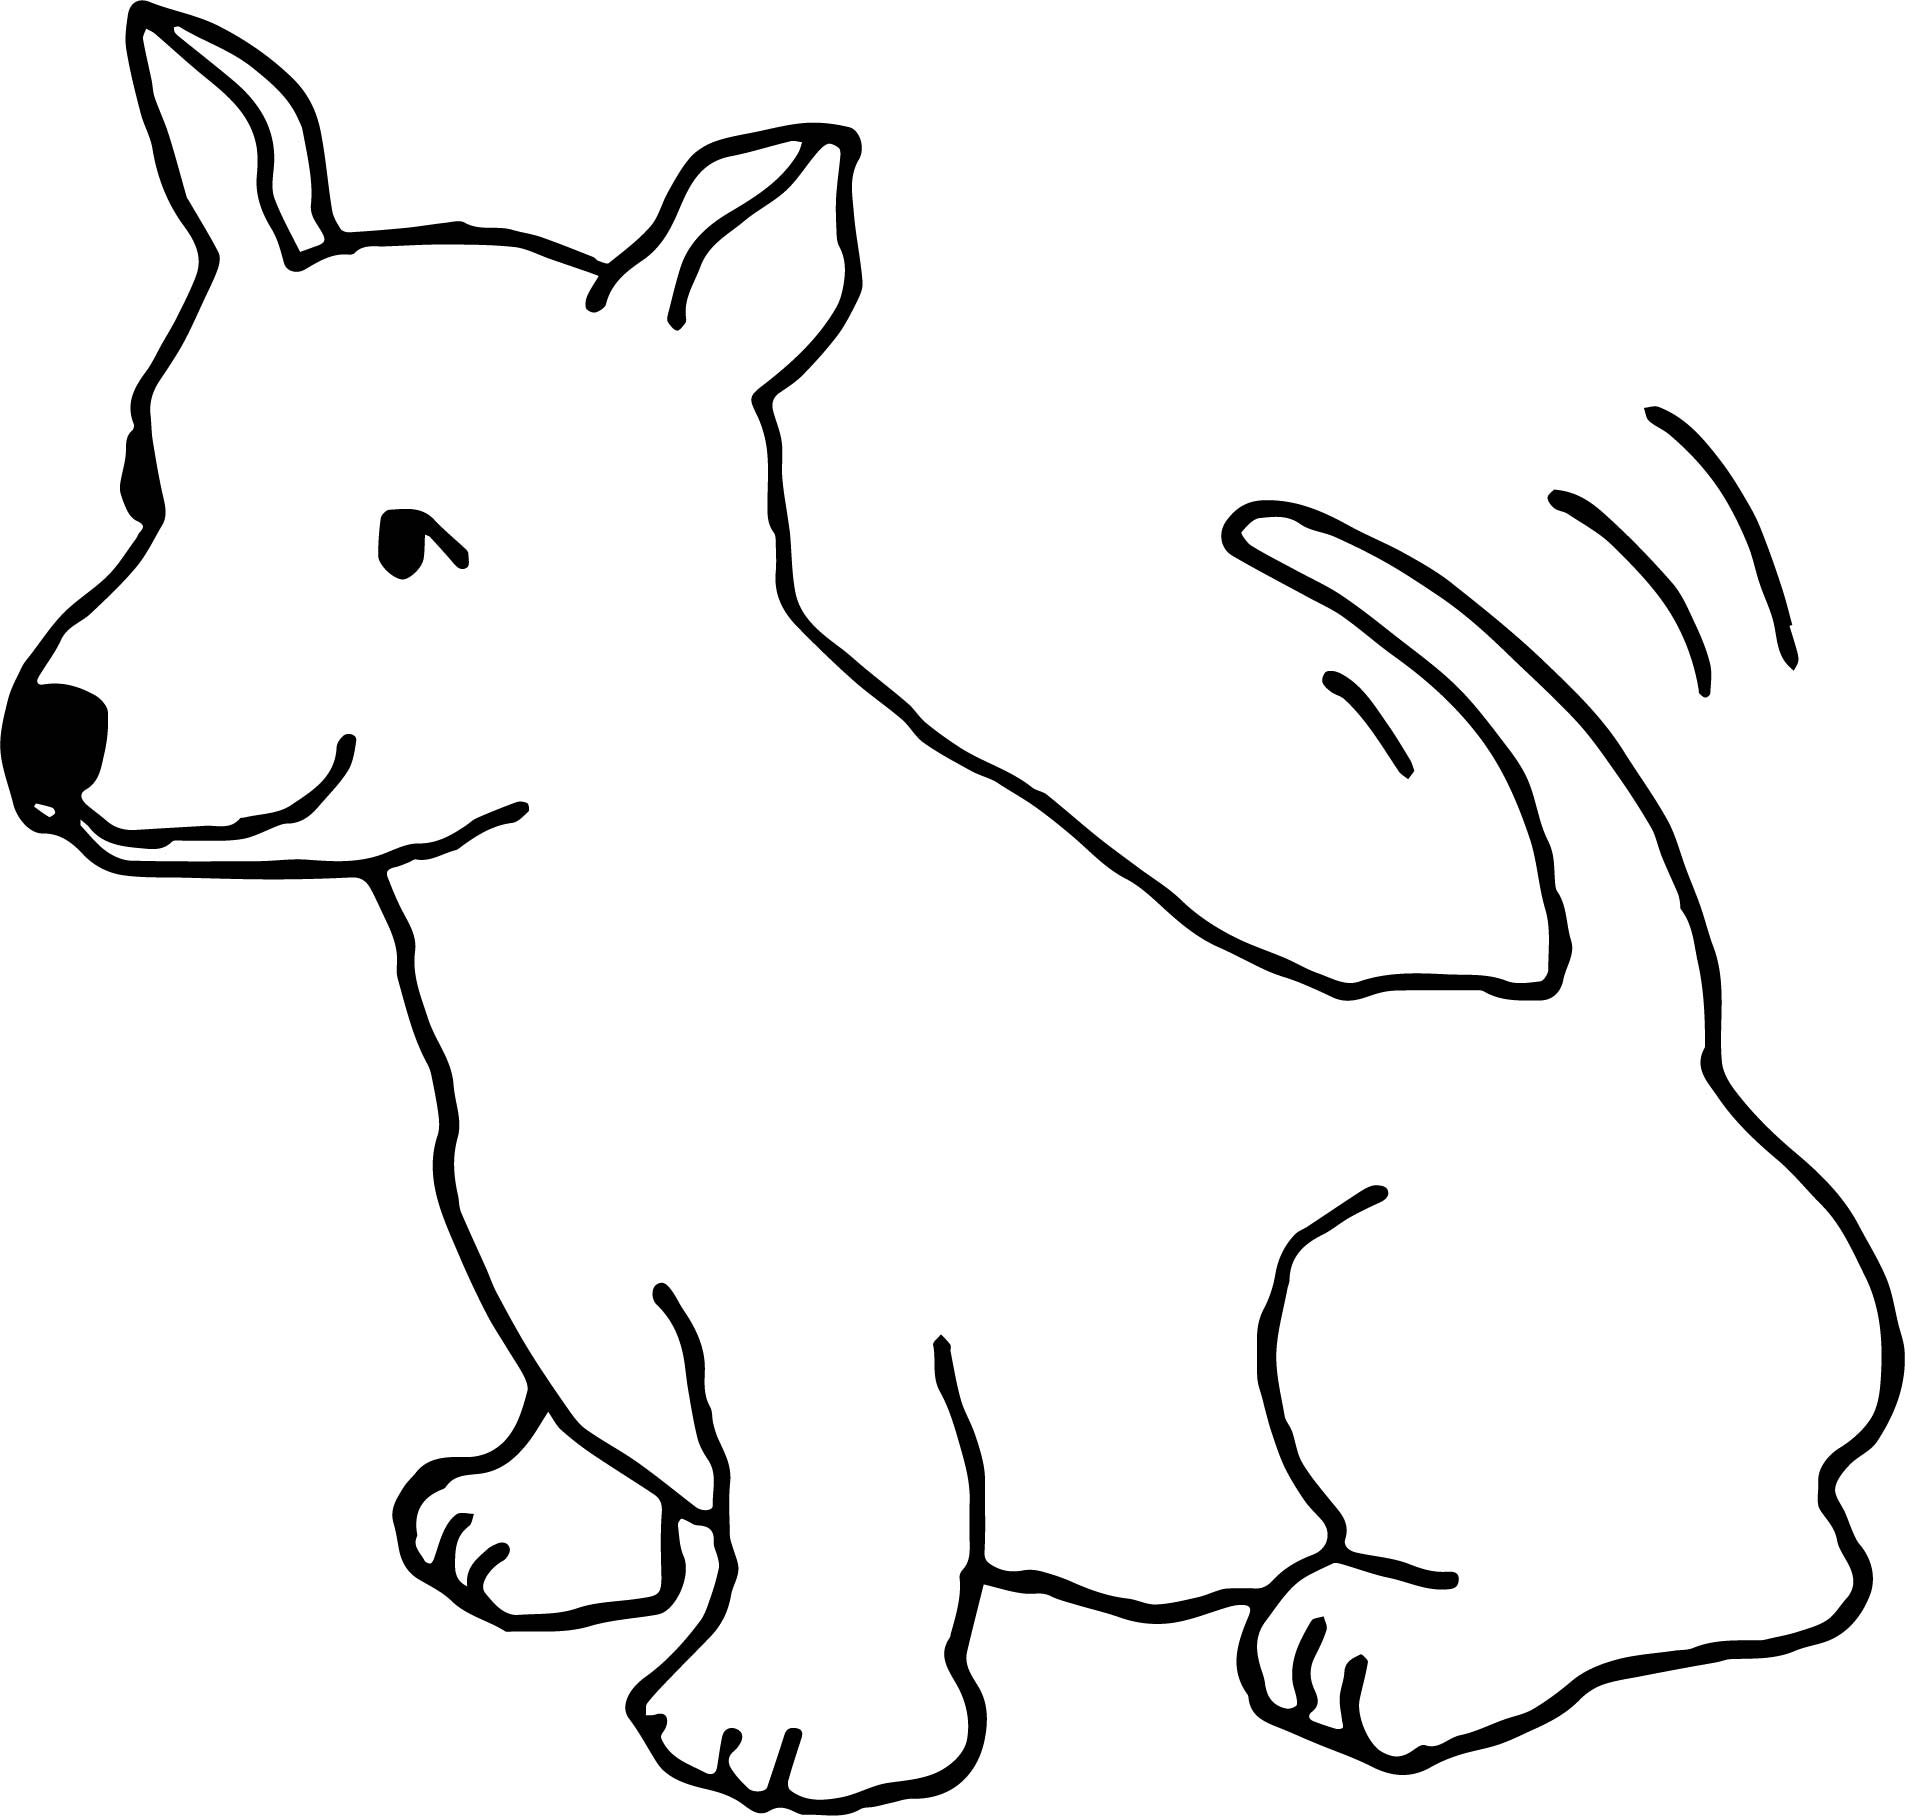 coloring pages of cute dogs and puppies - funny dogs happy cute dog color puppy dog coloring page